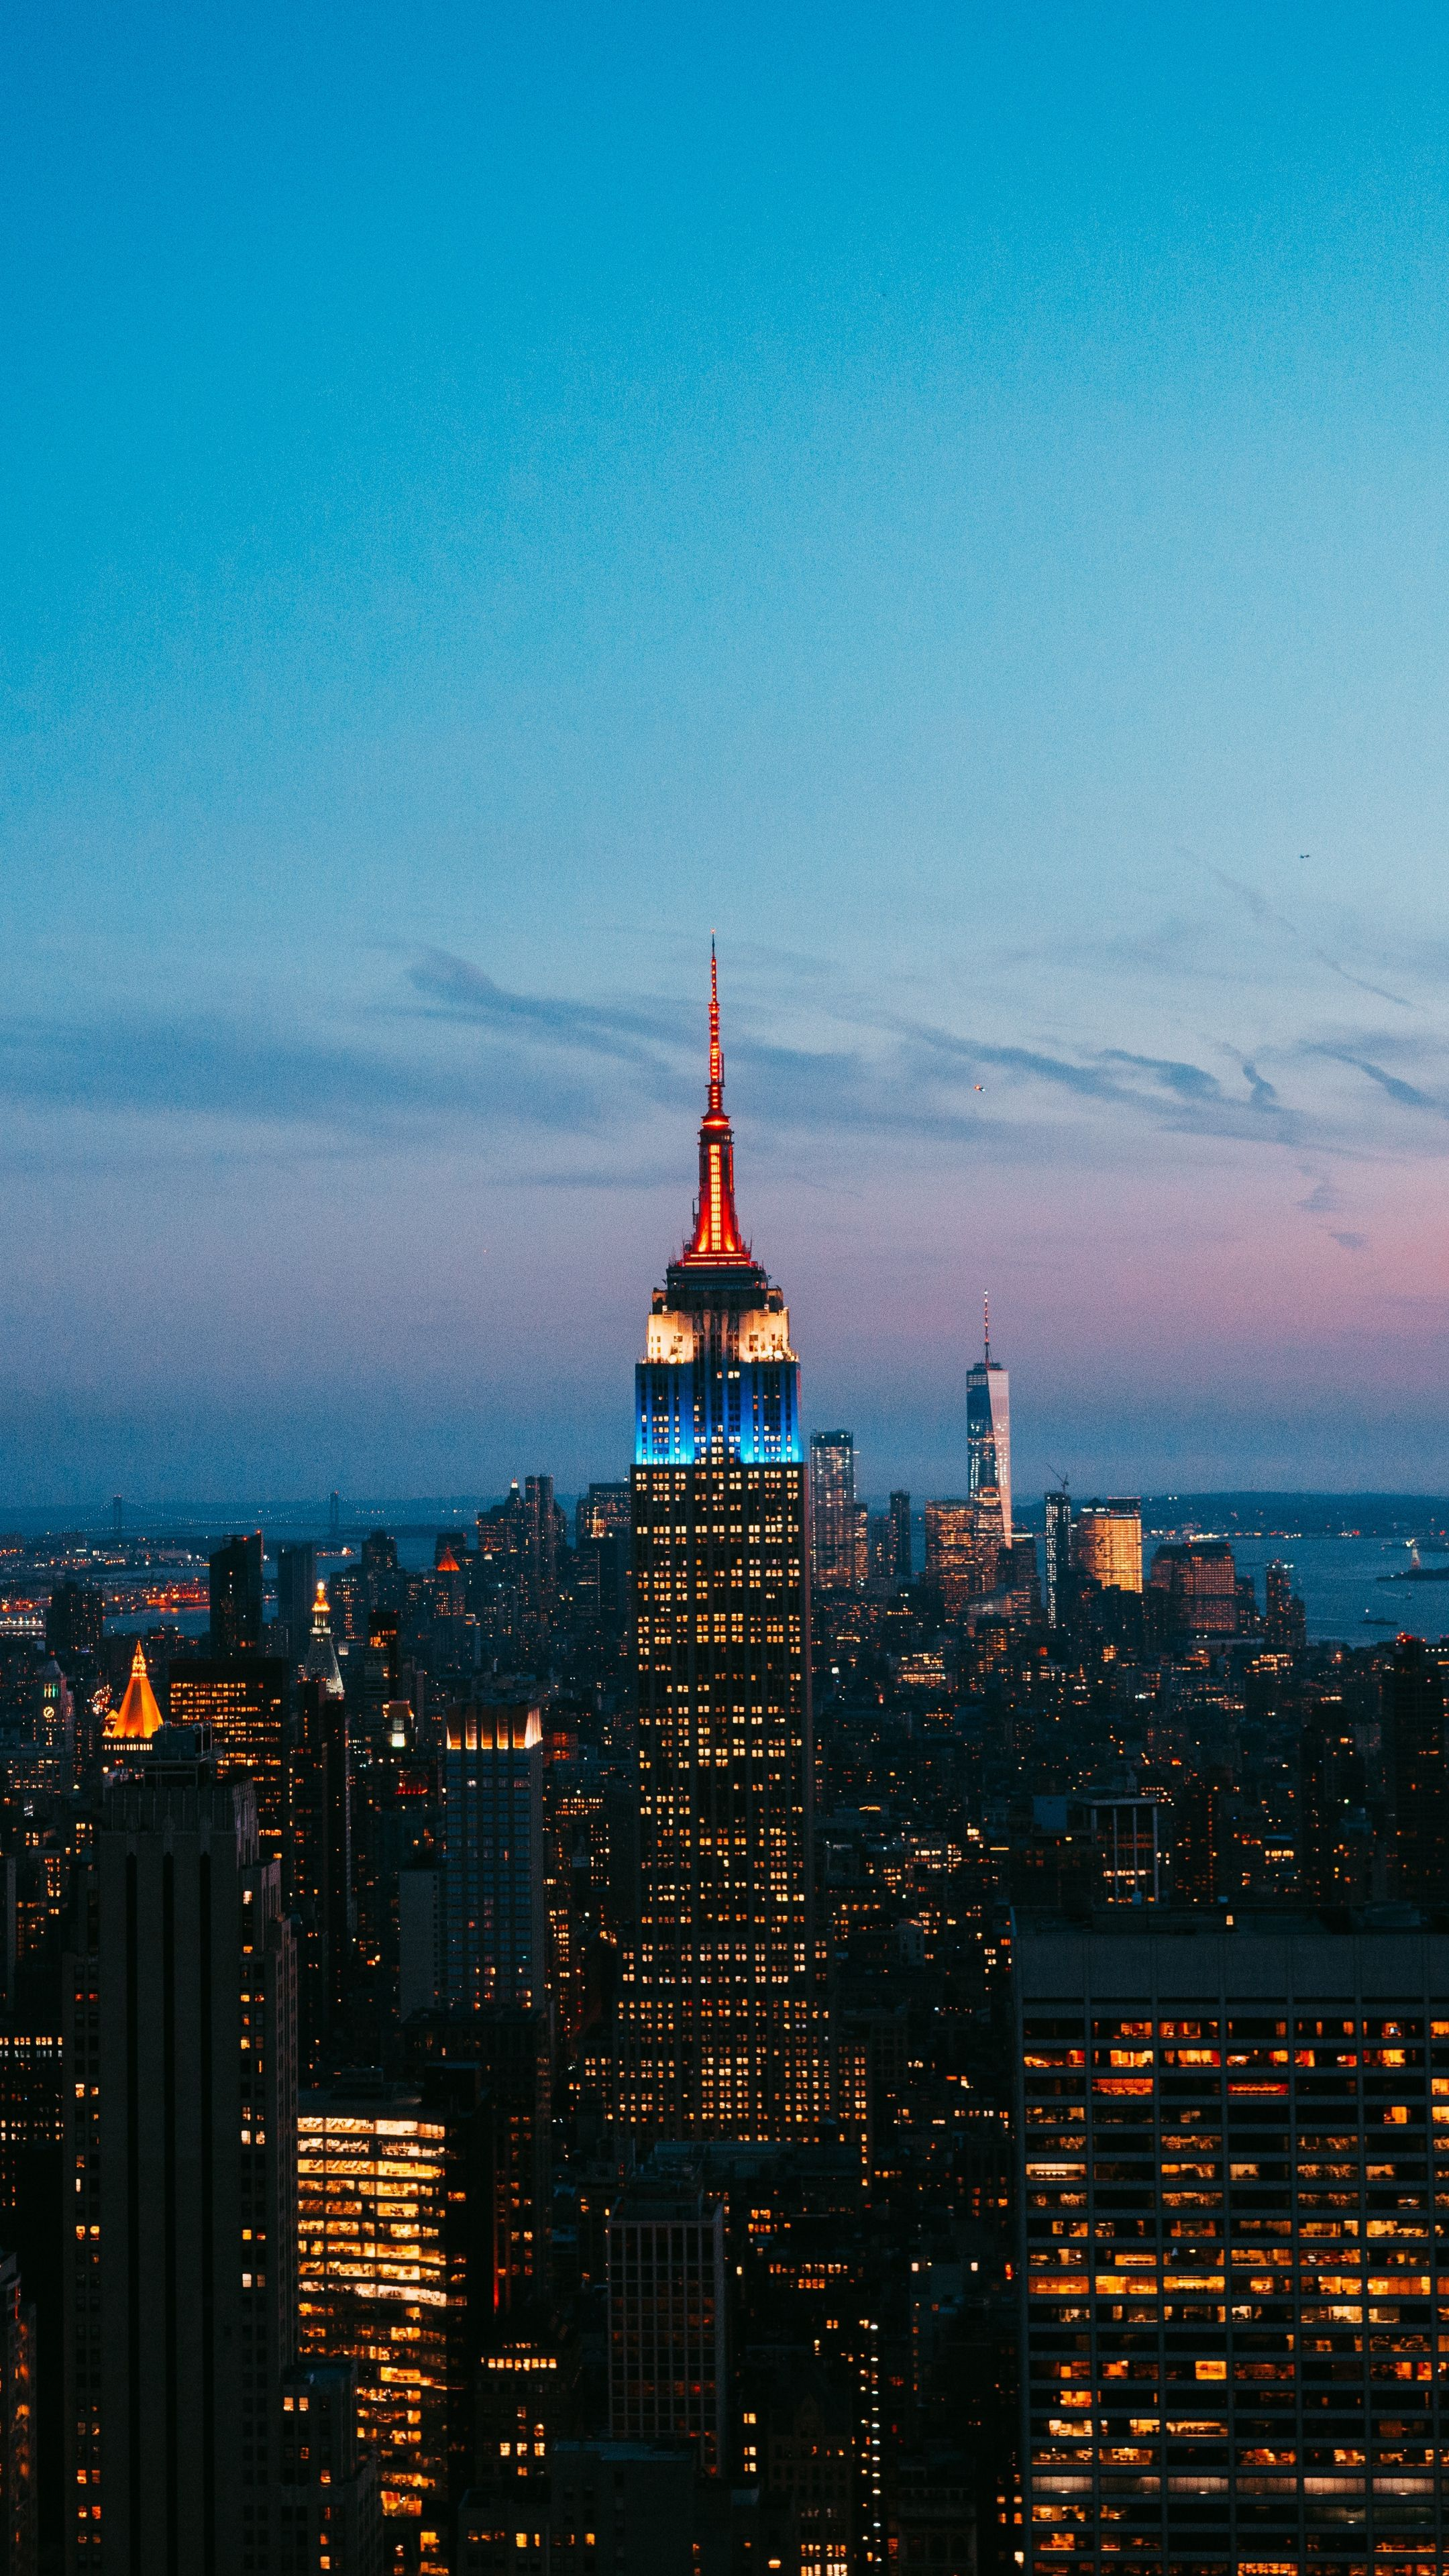 Places Newyork Unitedstates Skyscrapers Wallpapers Hd 4k Background For Android City Wallpaper New York Wallpaper City Photography